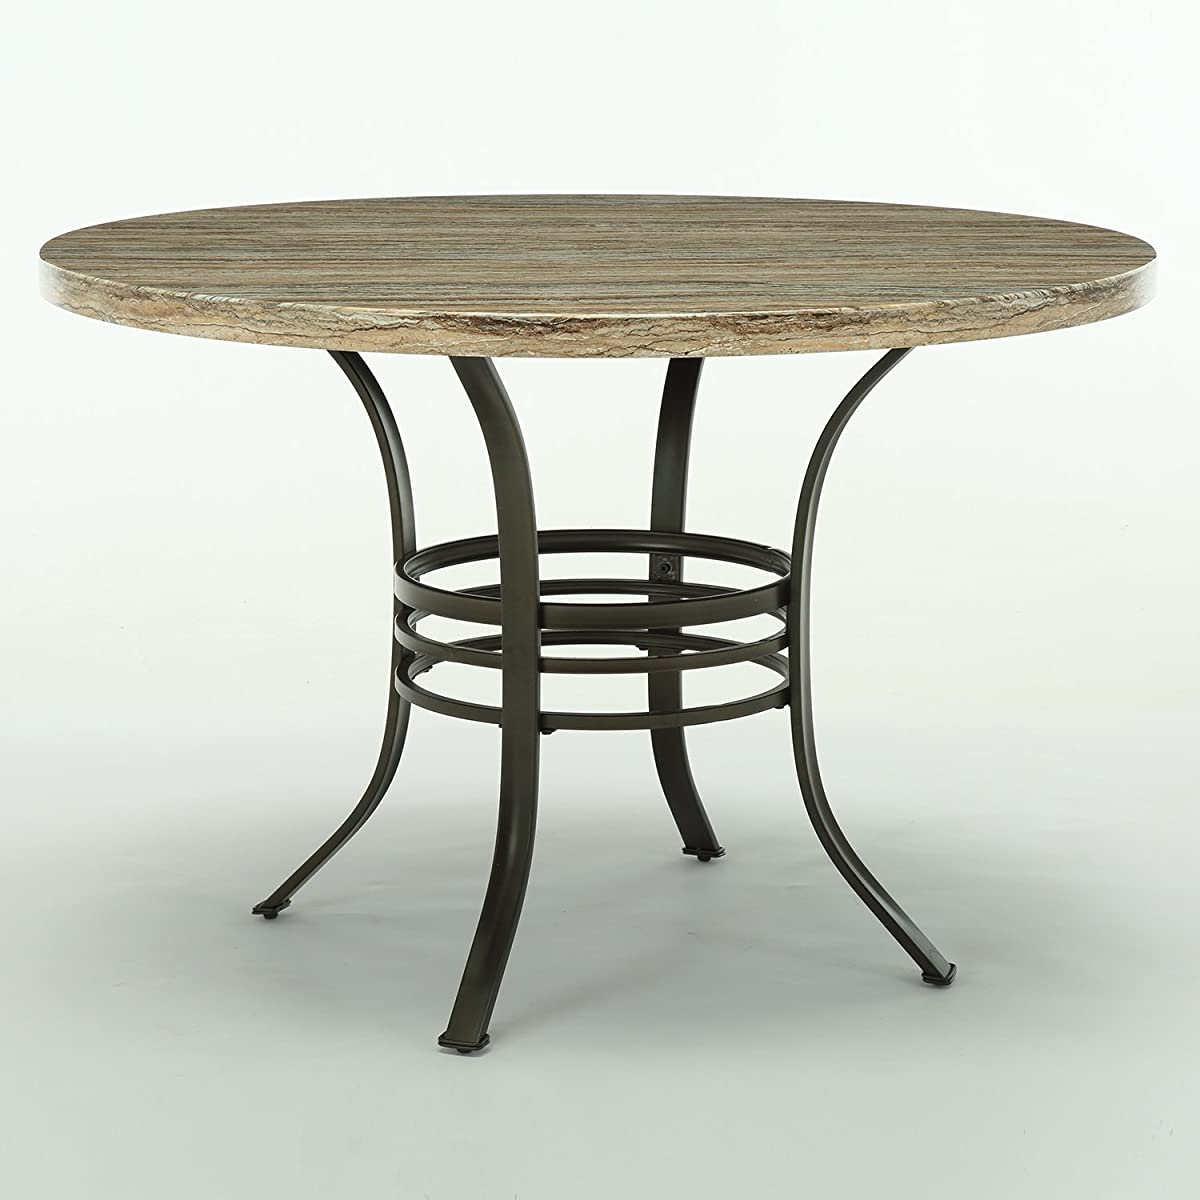 """Bestmart Inc 45"""" Diameter Round Dining Table Kitchen Pub Bistro Bar Breakfast Table w/ Faux Wood top Metal Frame"""